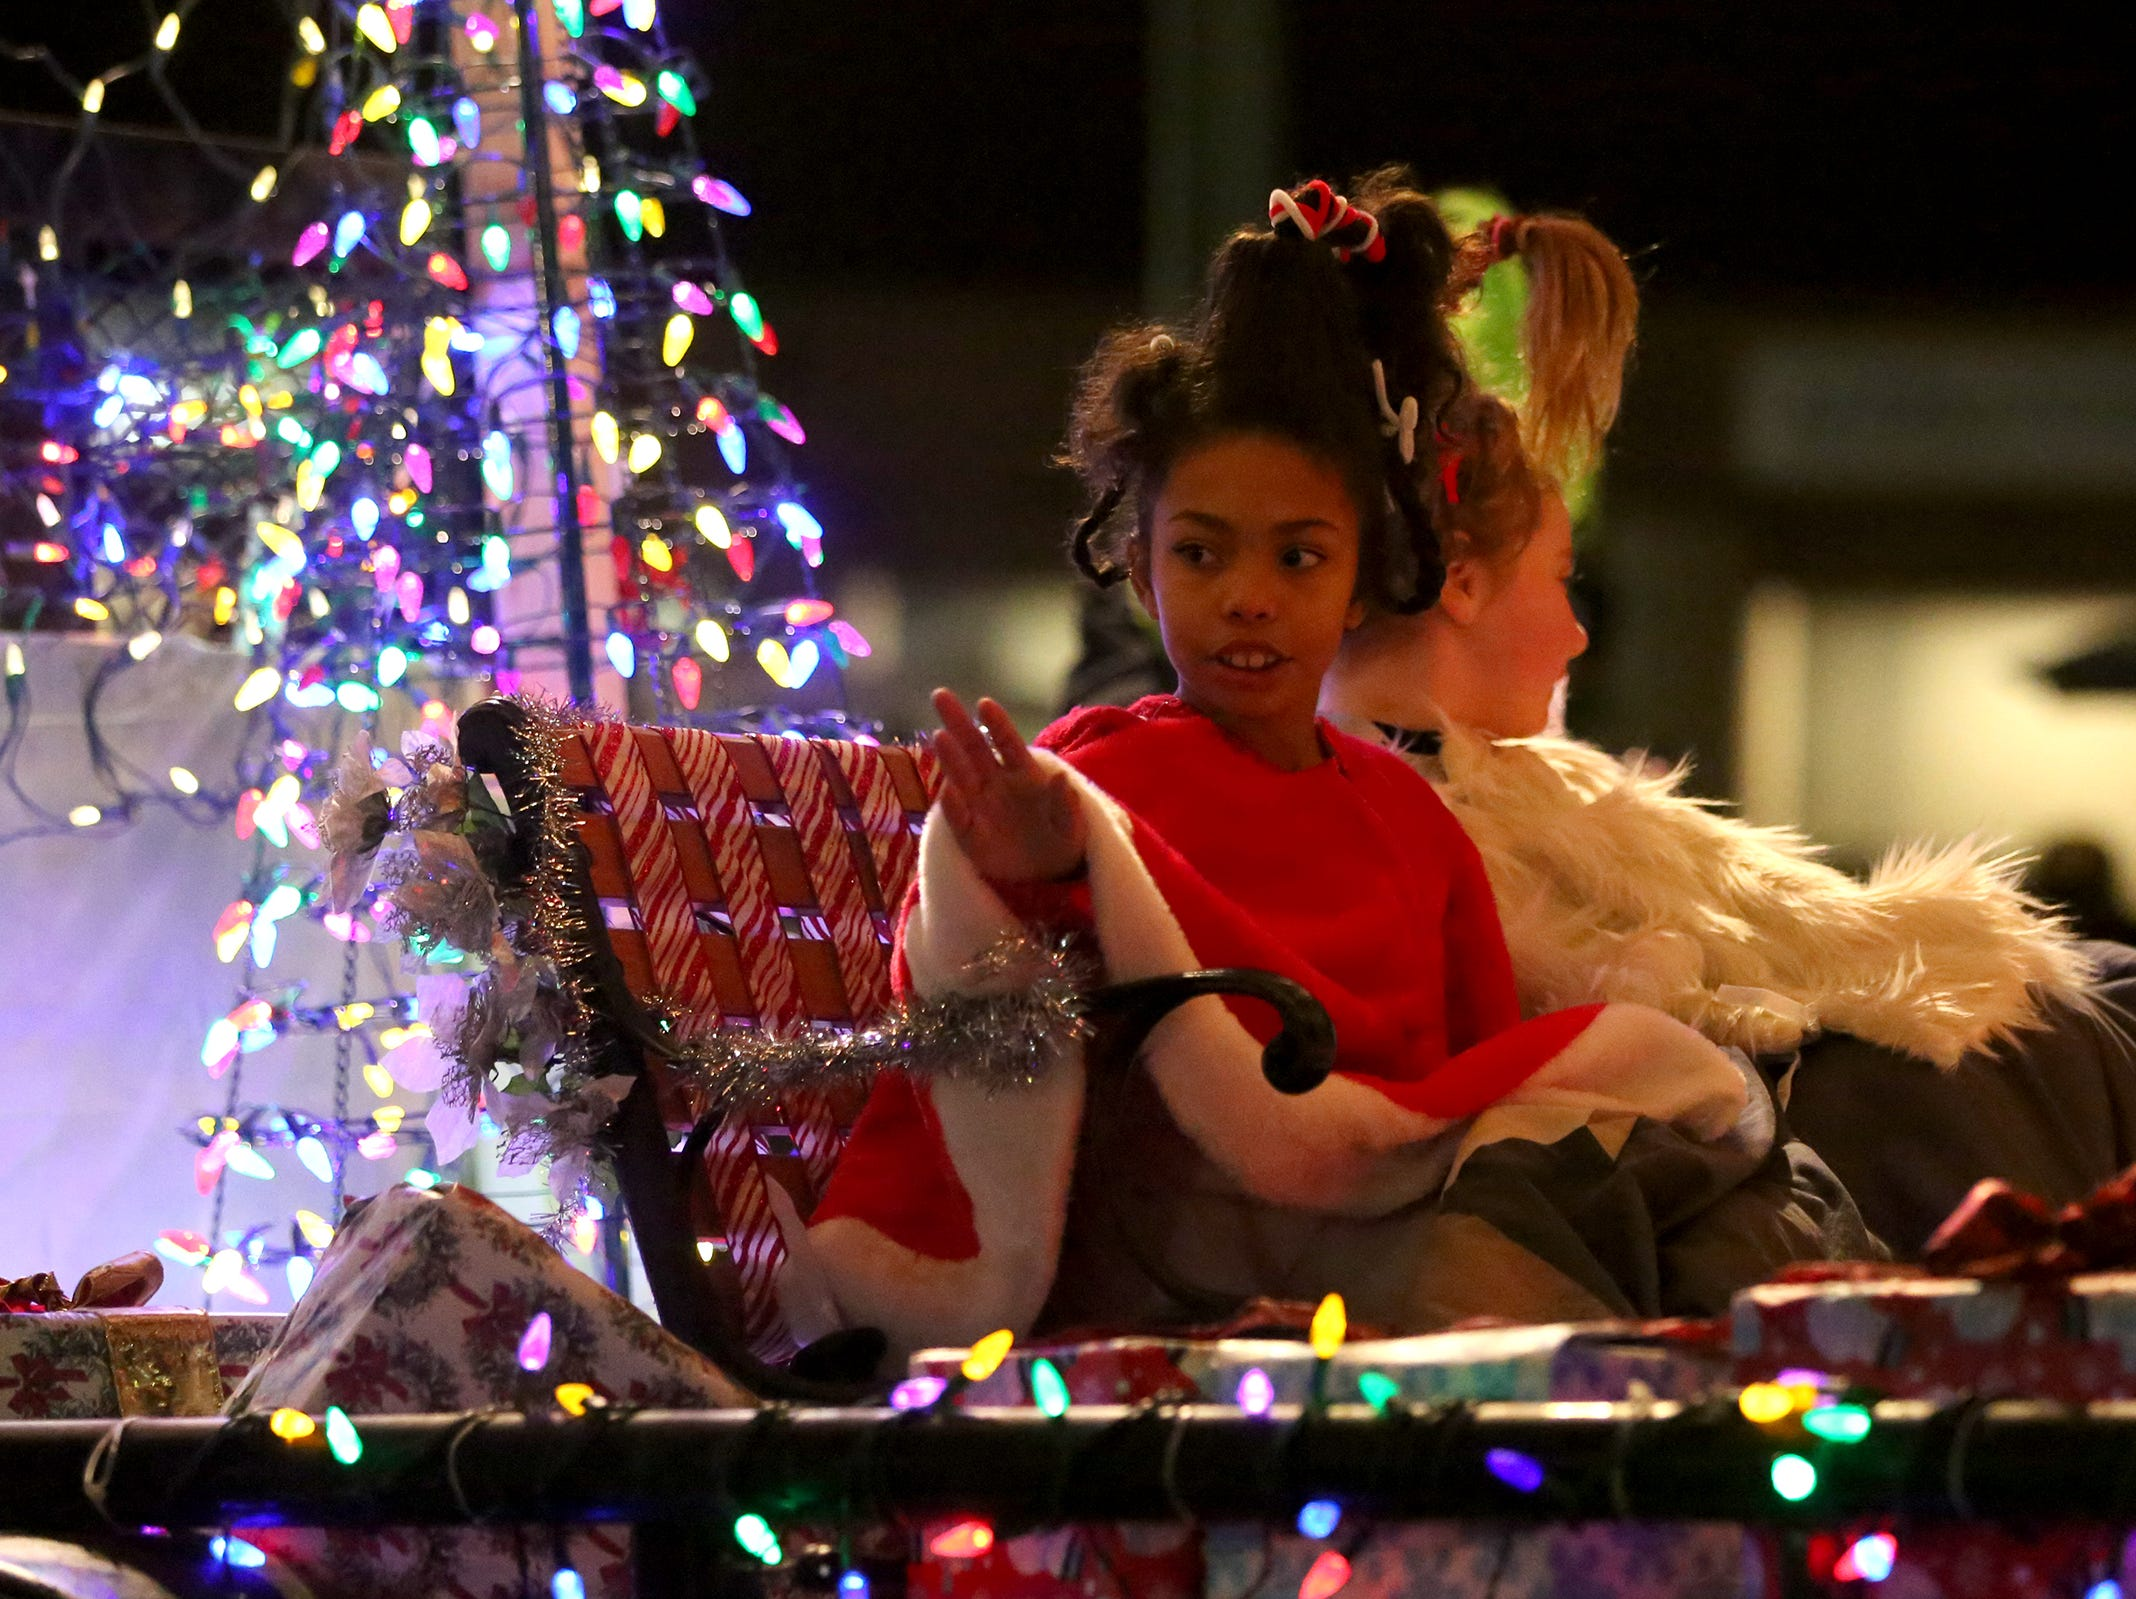 Willow Lake Golf Center & Driving Range showcases their Whovillle themed float during the Keizer Holiday Lights Parade in Keizer on Saturday, Dec. 8, 2018.